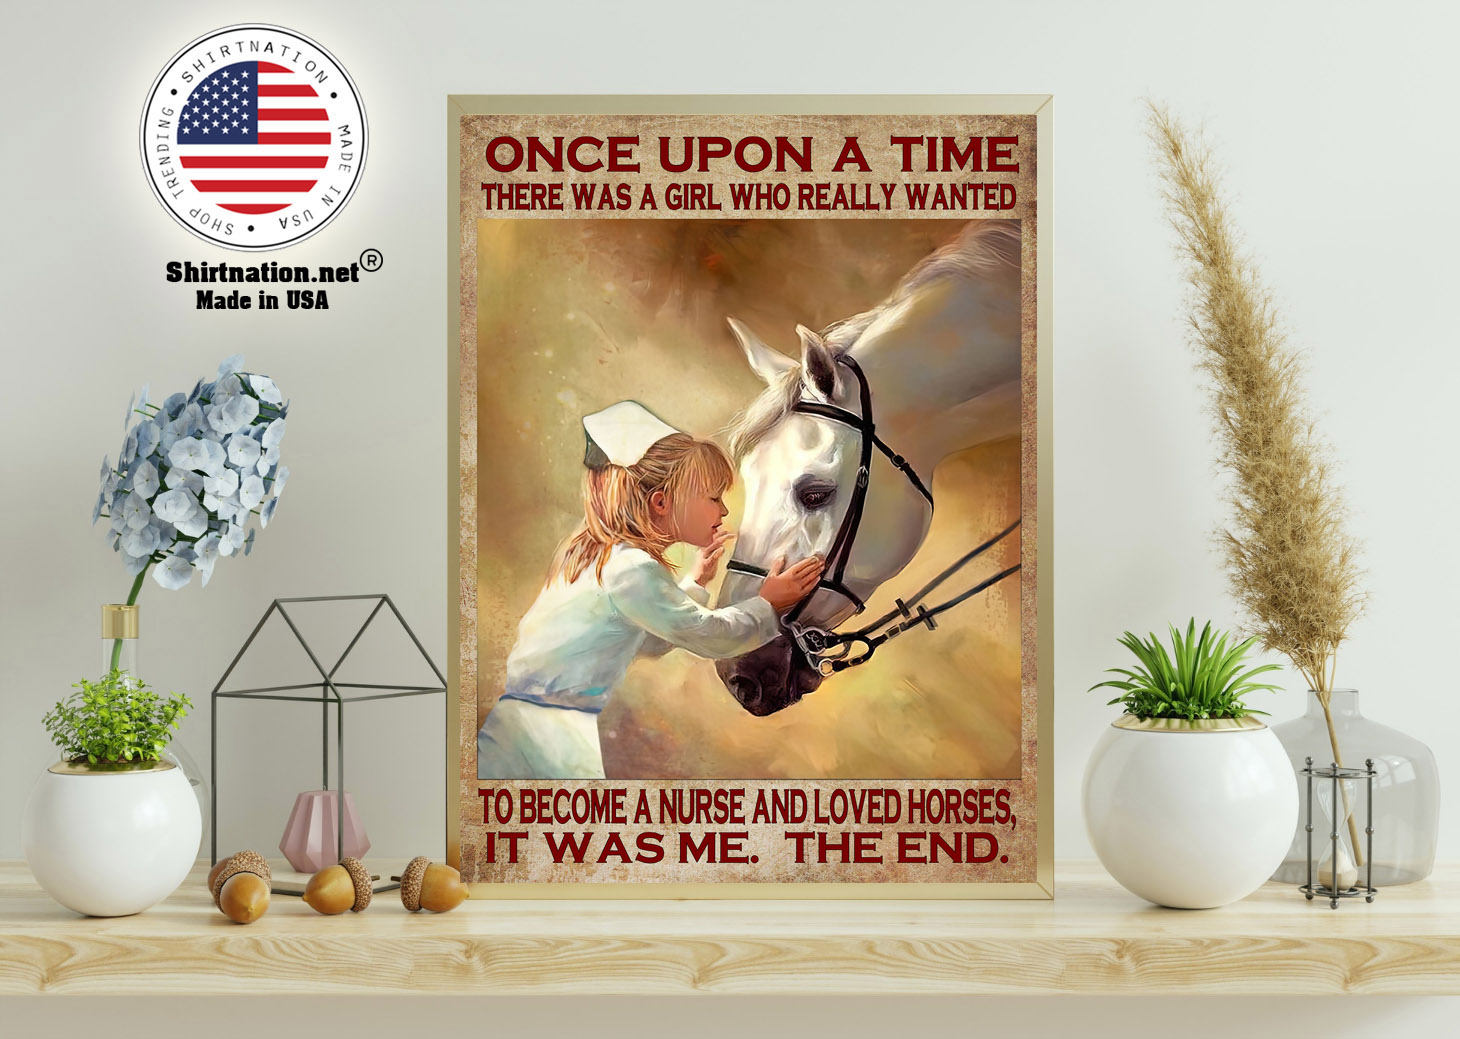 Once upon a time there was a girl who really wanted to become a nurse and loved horses poster 15